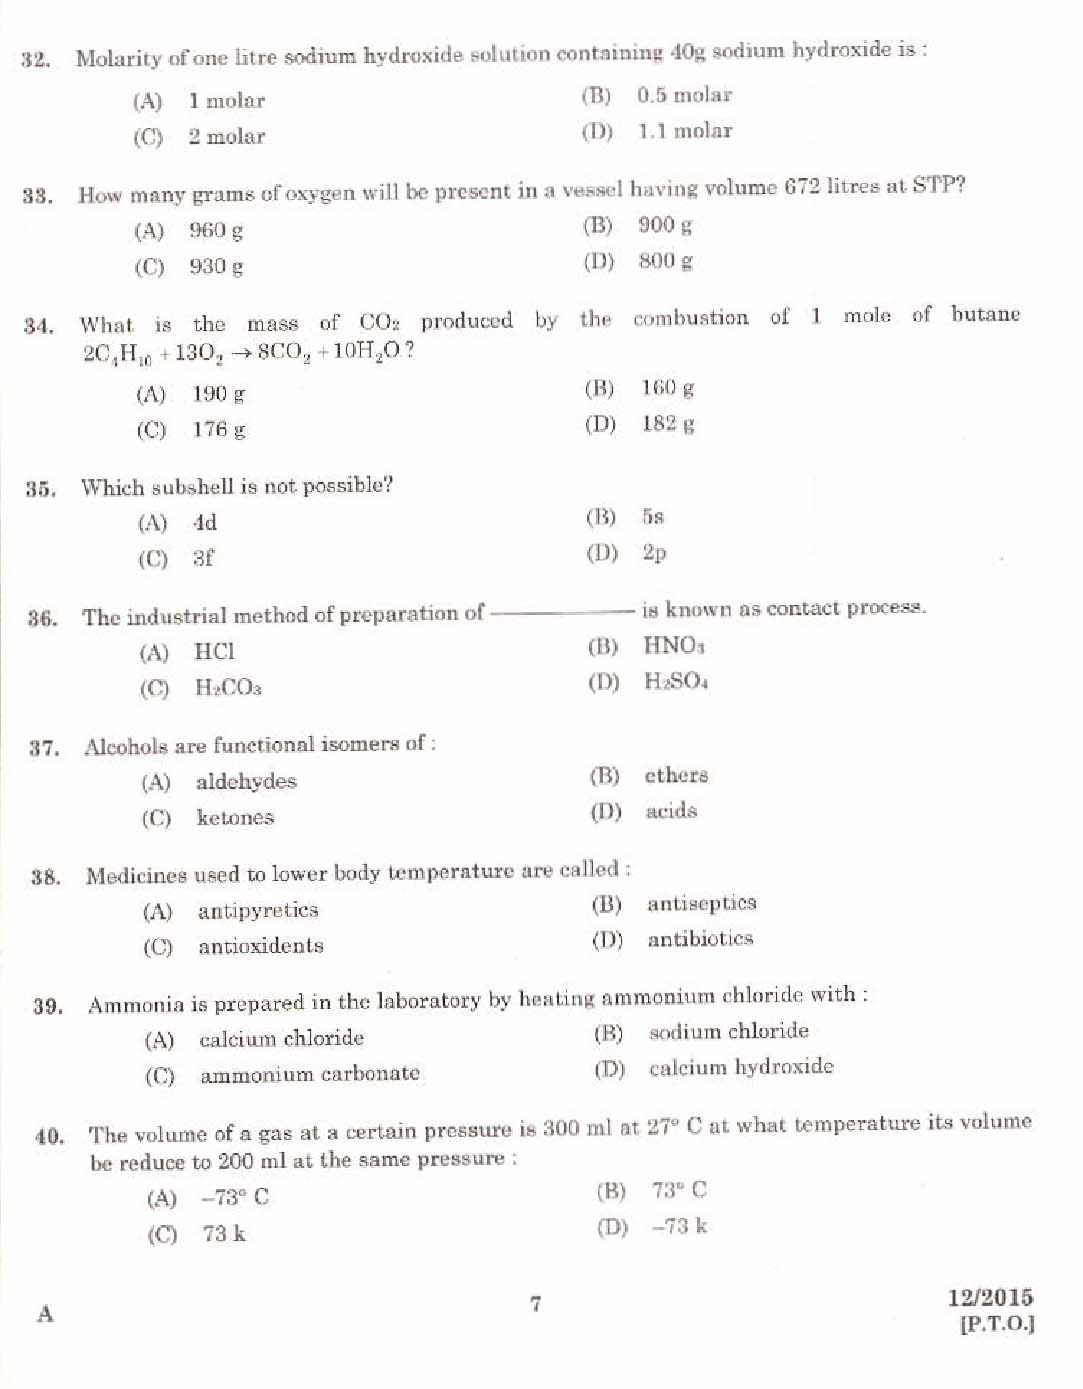 Kerala PSC Laboratory Assistant Exam 2015 Question Paper Code 122015